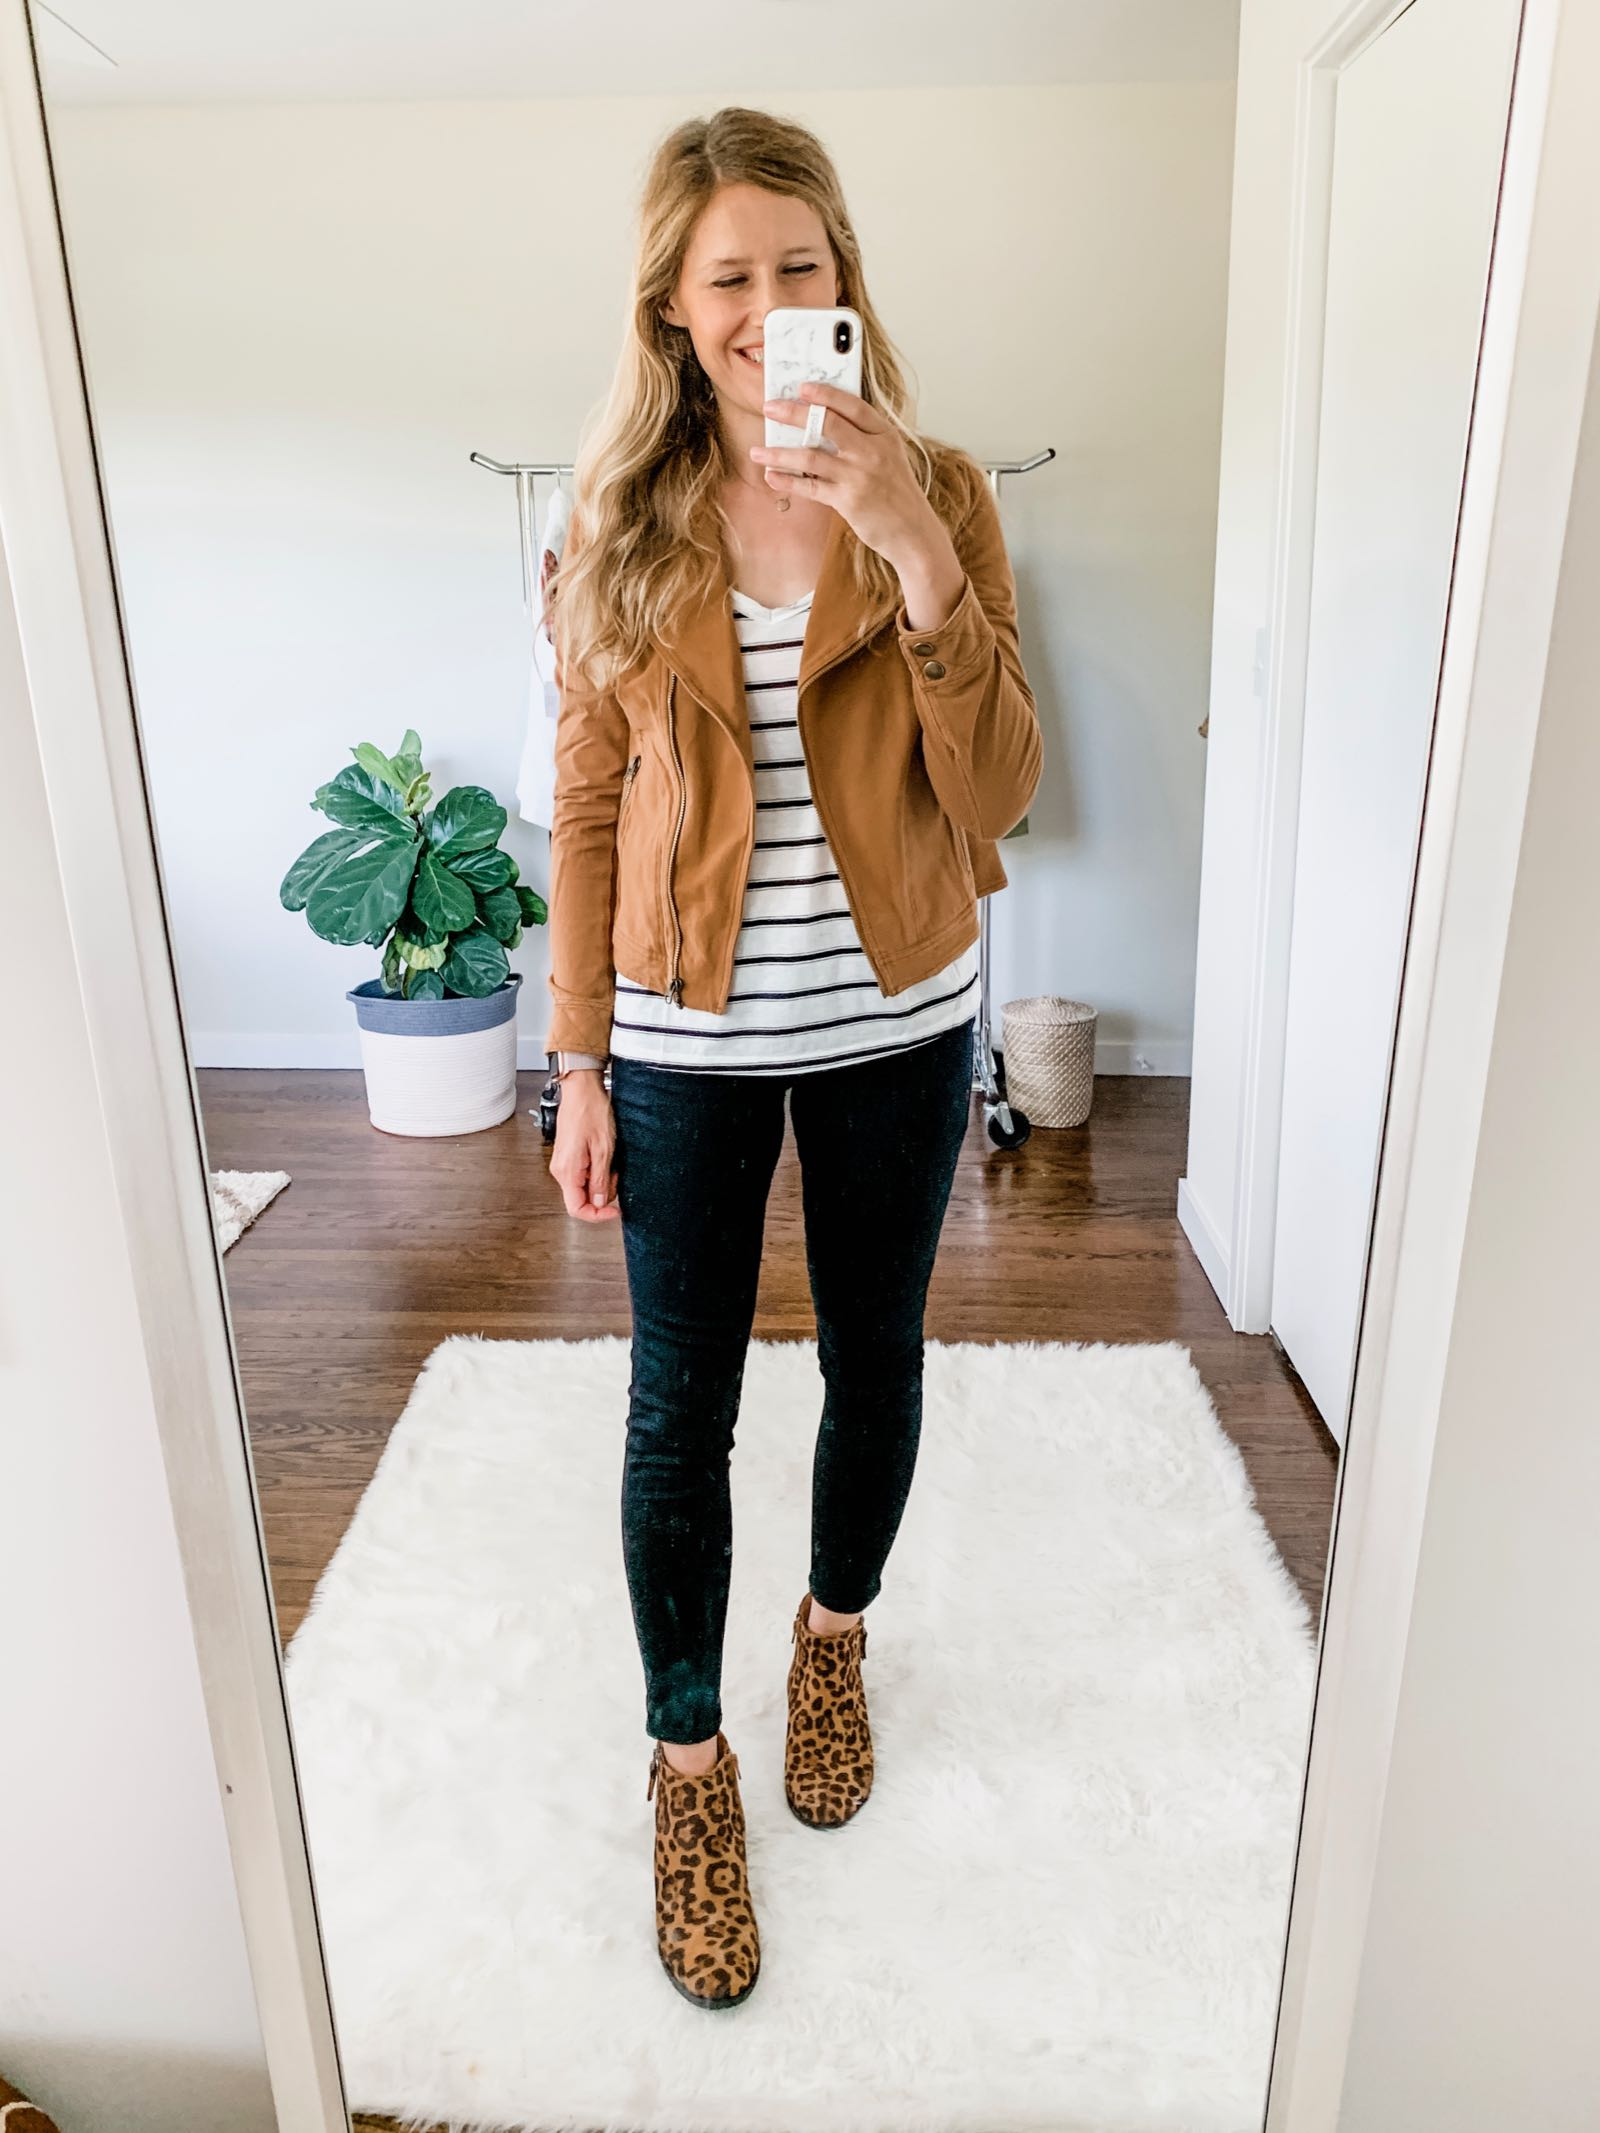 Moto jacket outfit idea for fall featuring camel jacket, striped top and leopard print booties